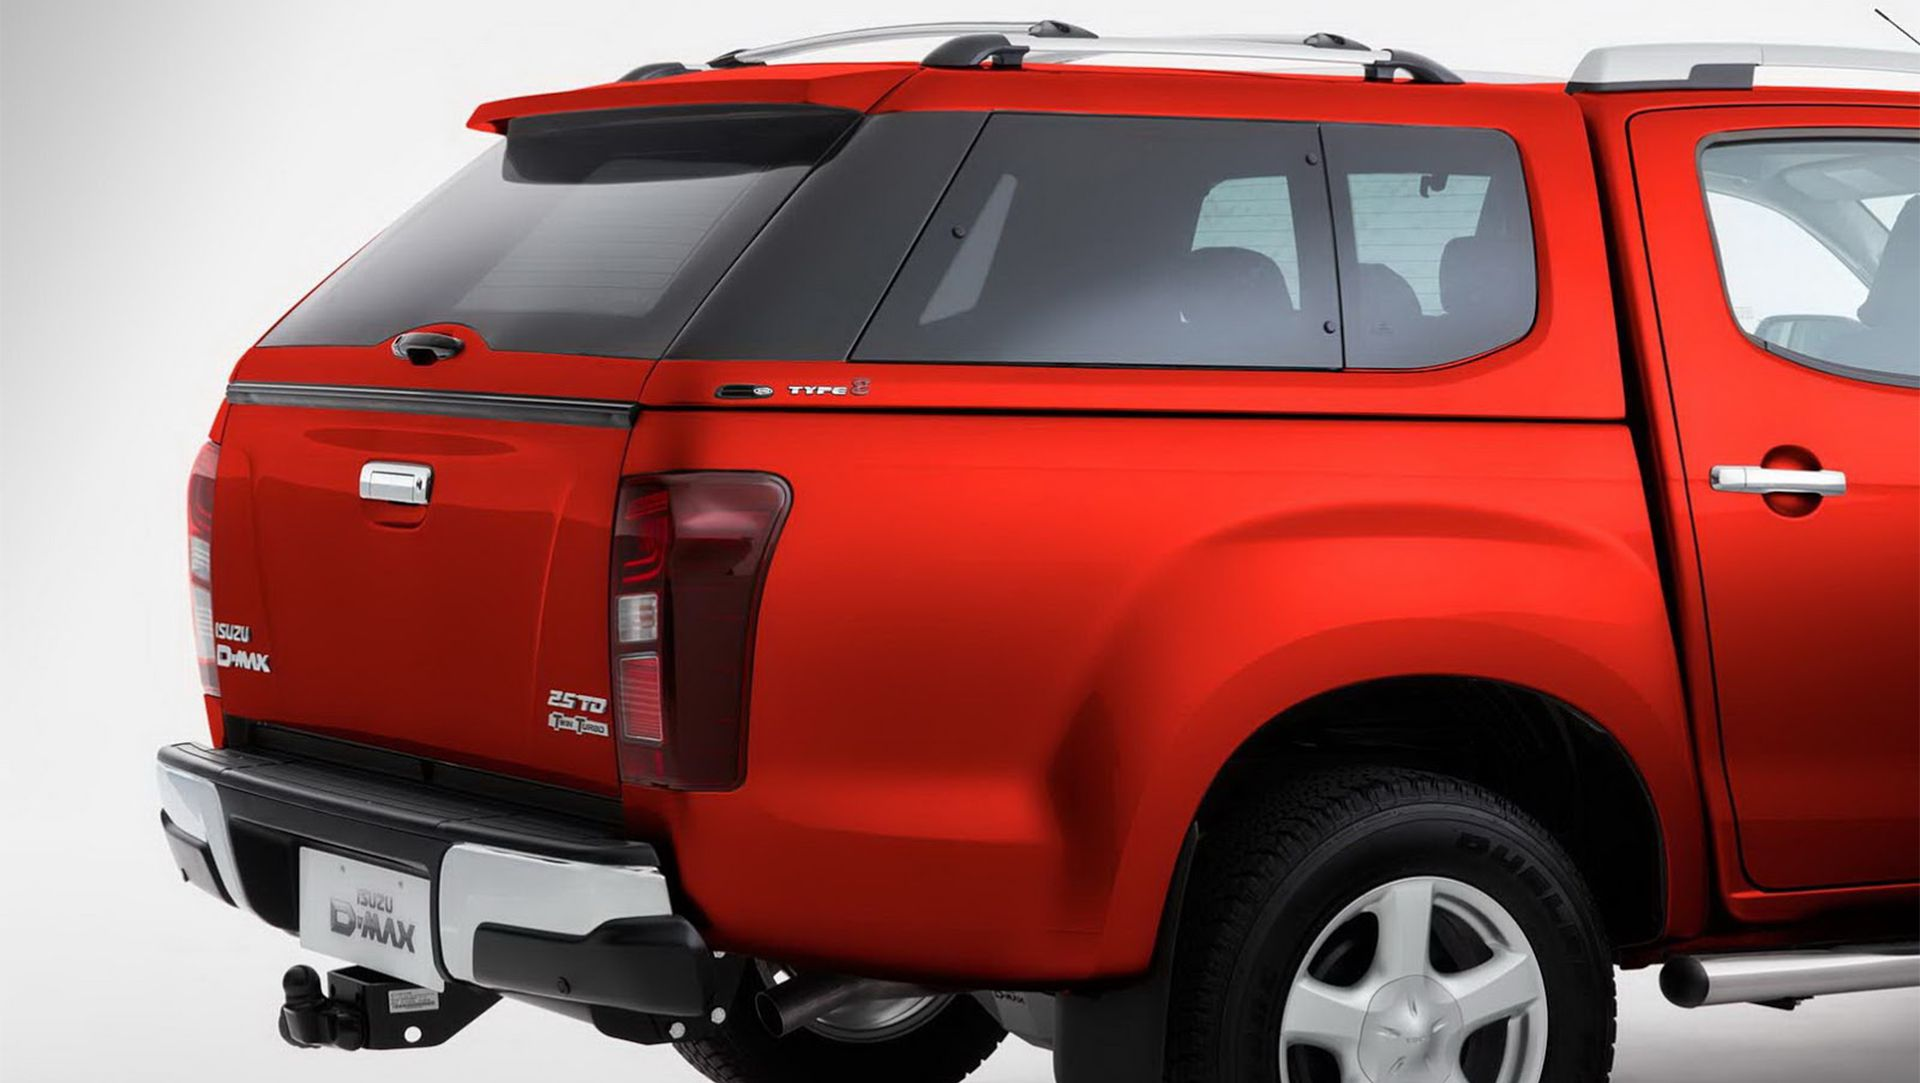 Alfa img showing gt leer canopy glass - Isuzu D Max Pickup With New Hard Top Canopy